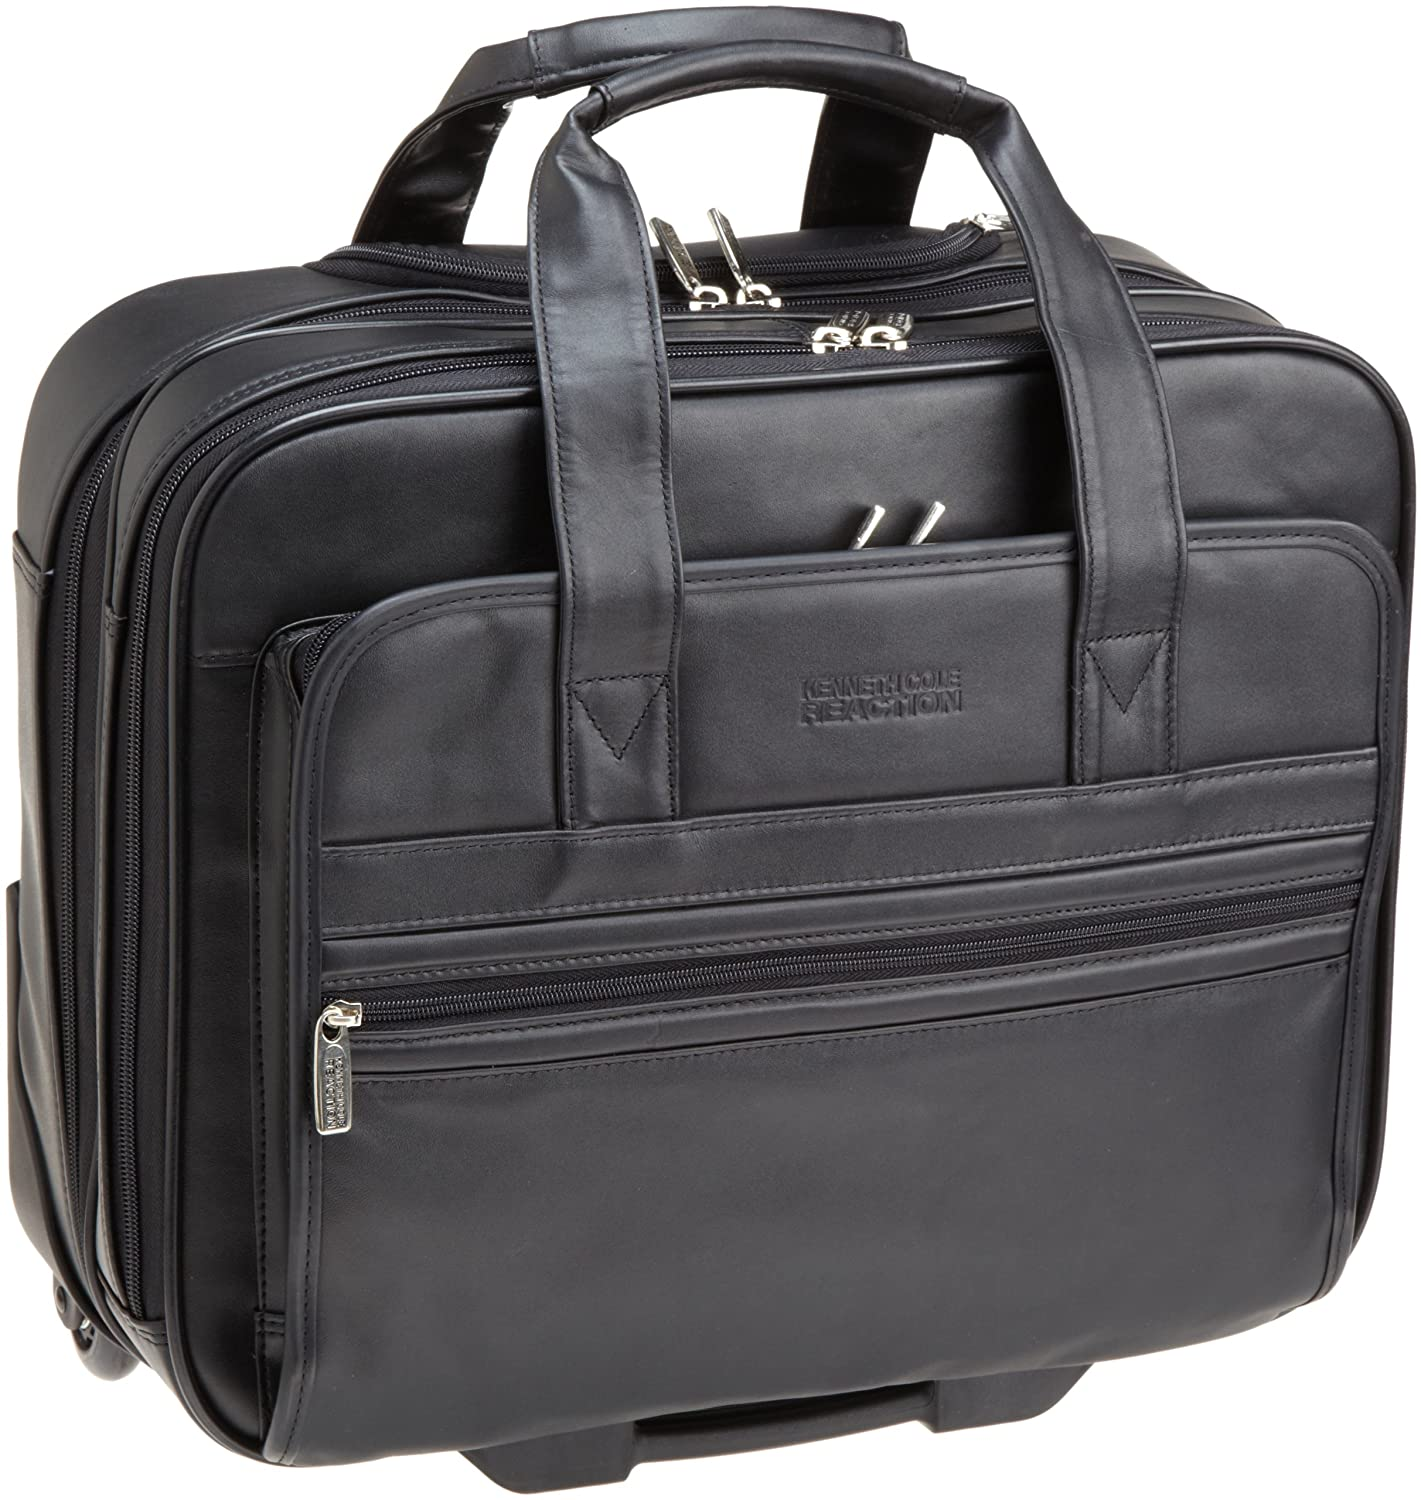 Amazon.com | Kenneth Cole Reaction Luggage Keep On Rollin, Black ...